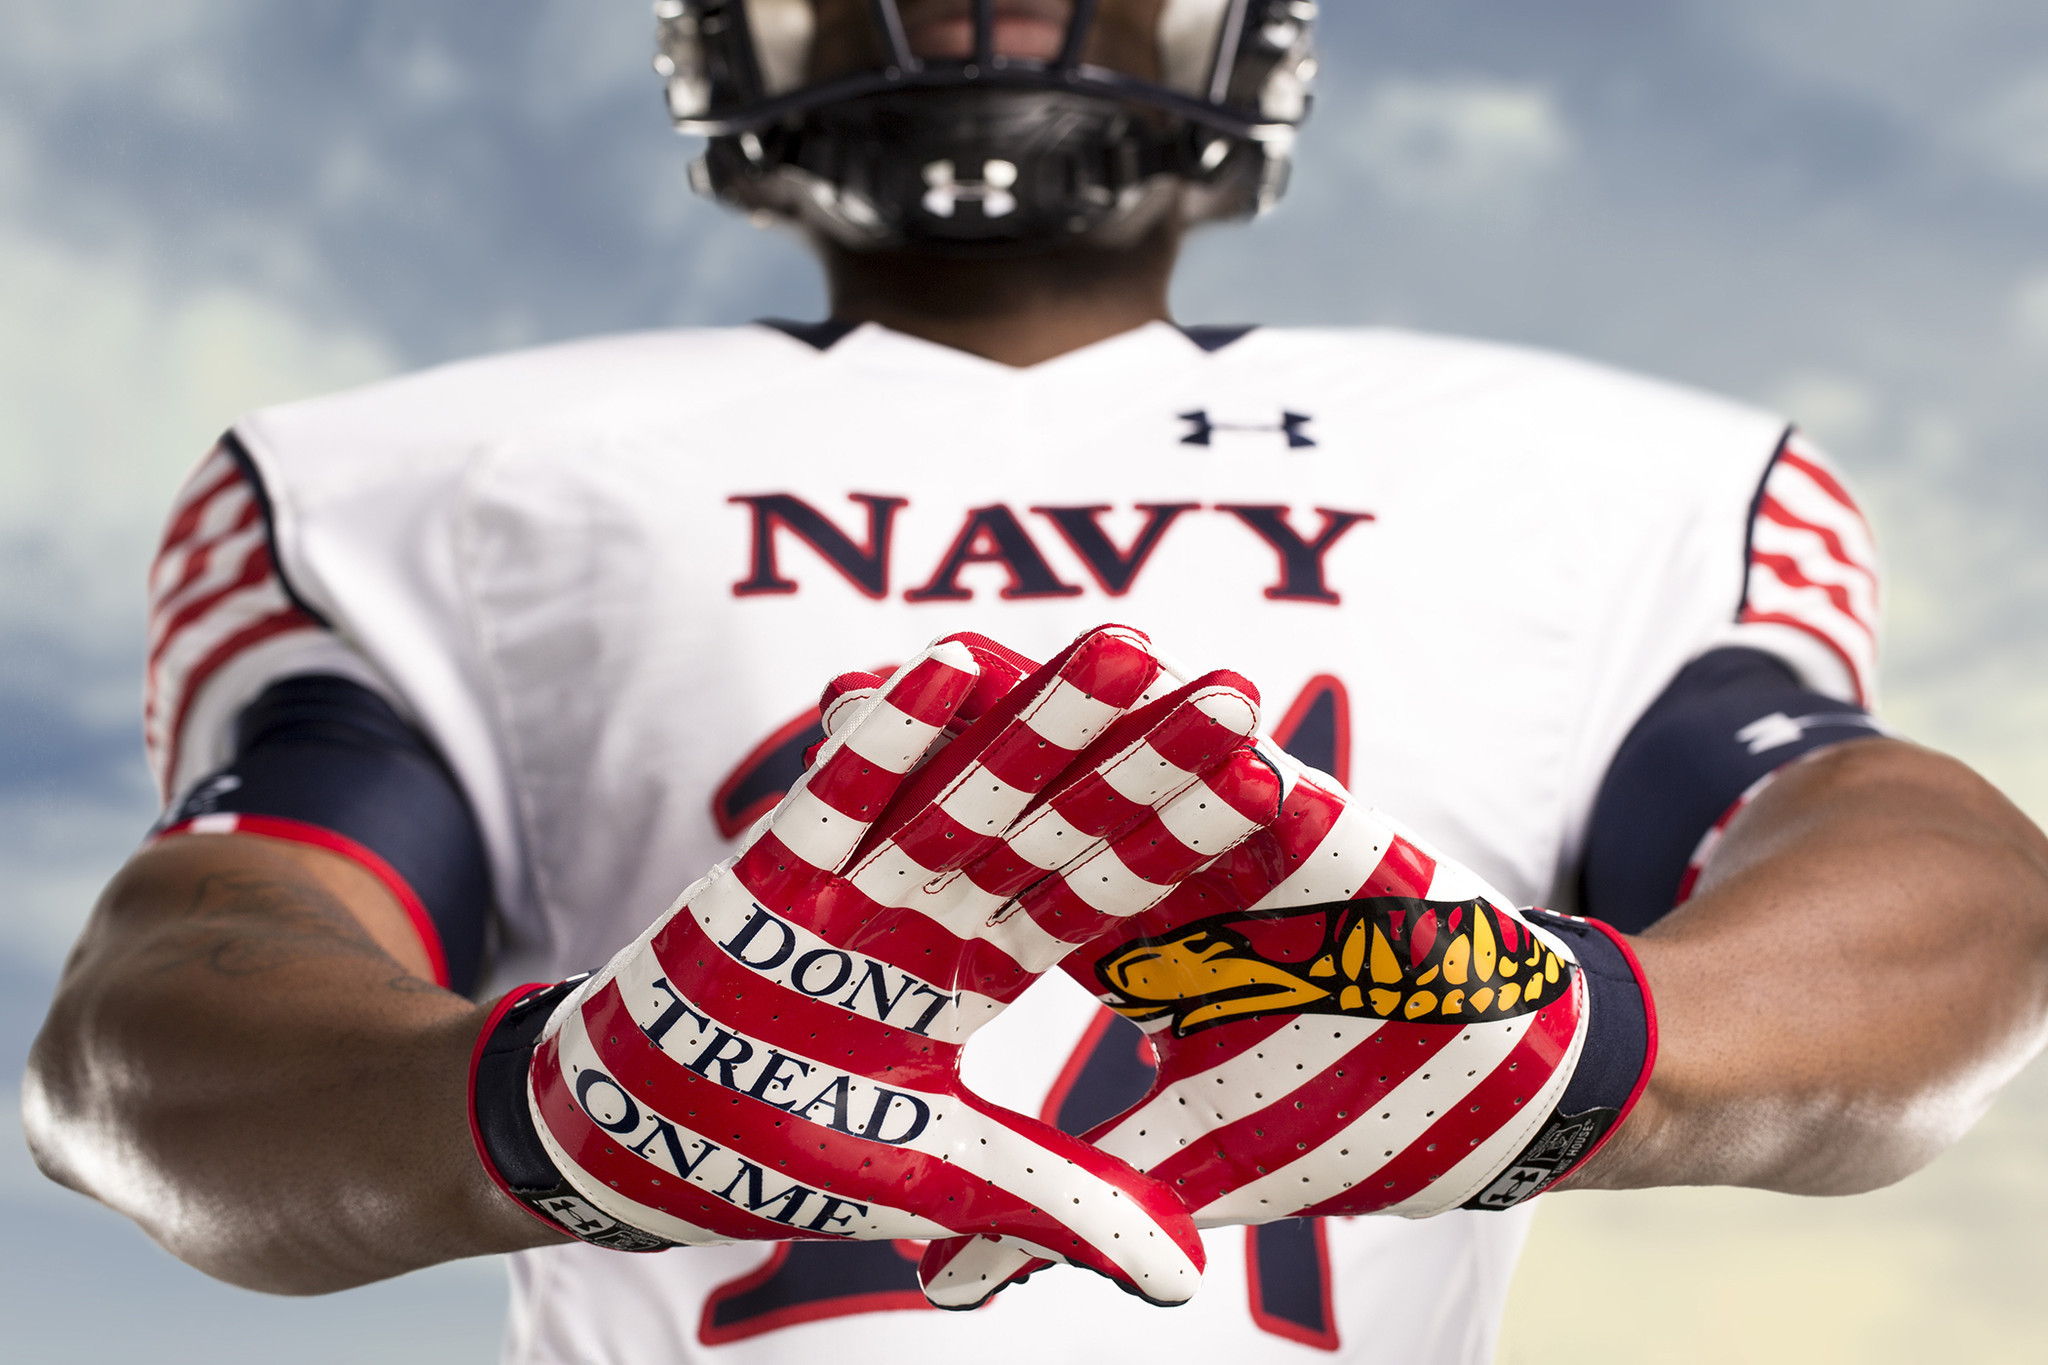 9001d56ffd4 Special edition Under Armour Army-Navy football uniforms  Pictures  -  Capital Gazette